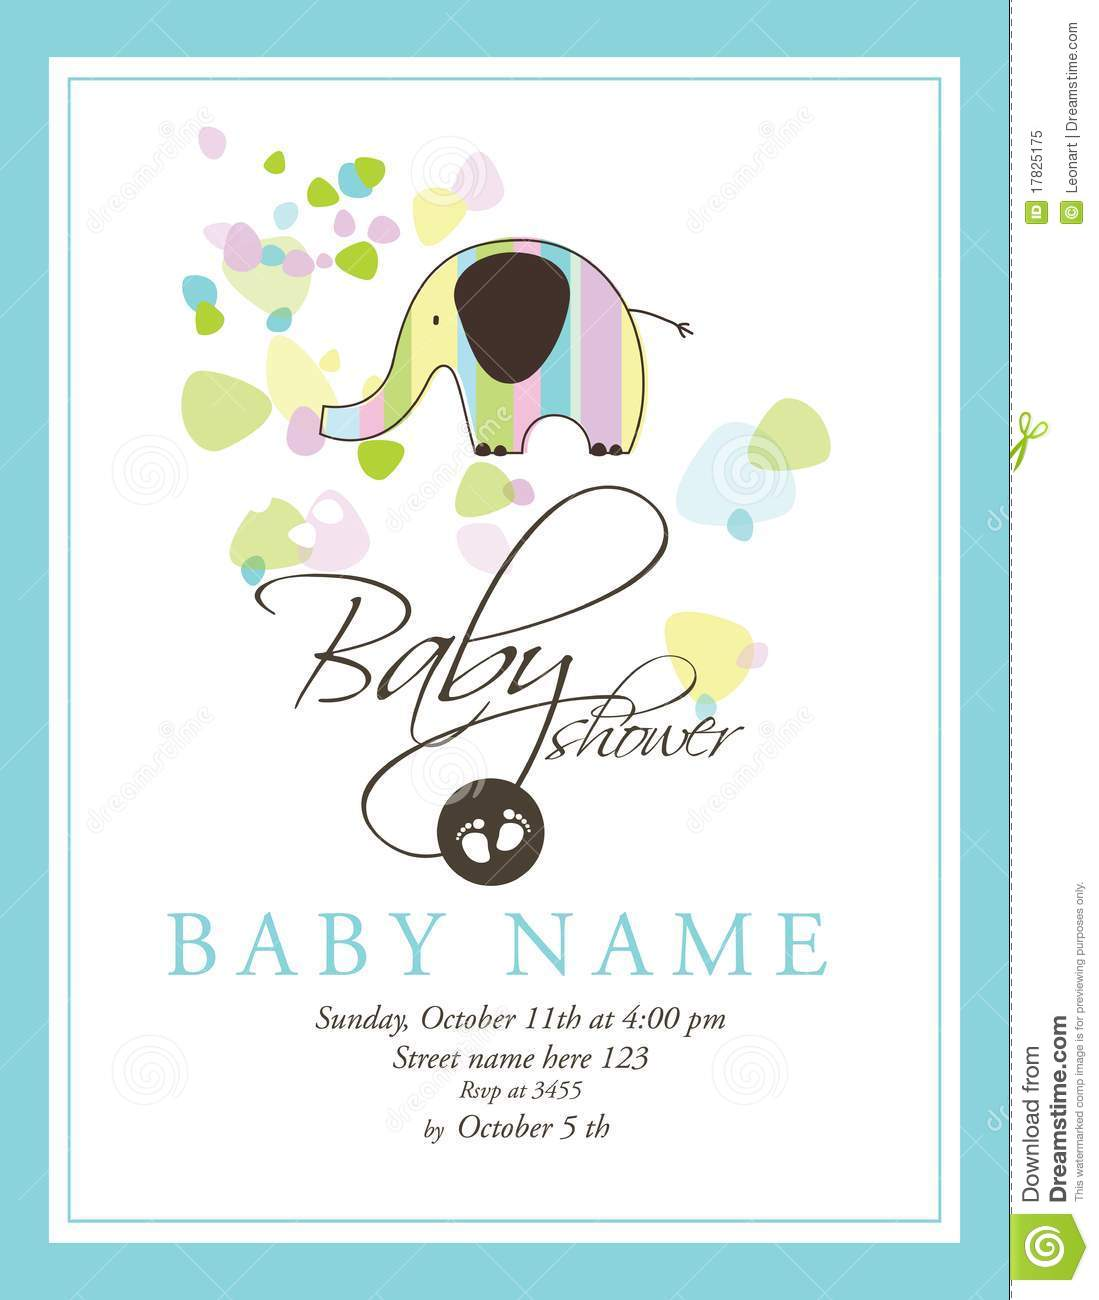 Clipart Birthday Invitation